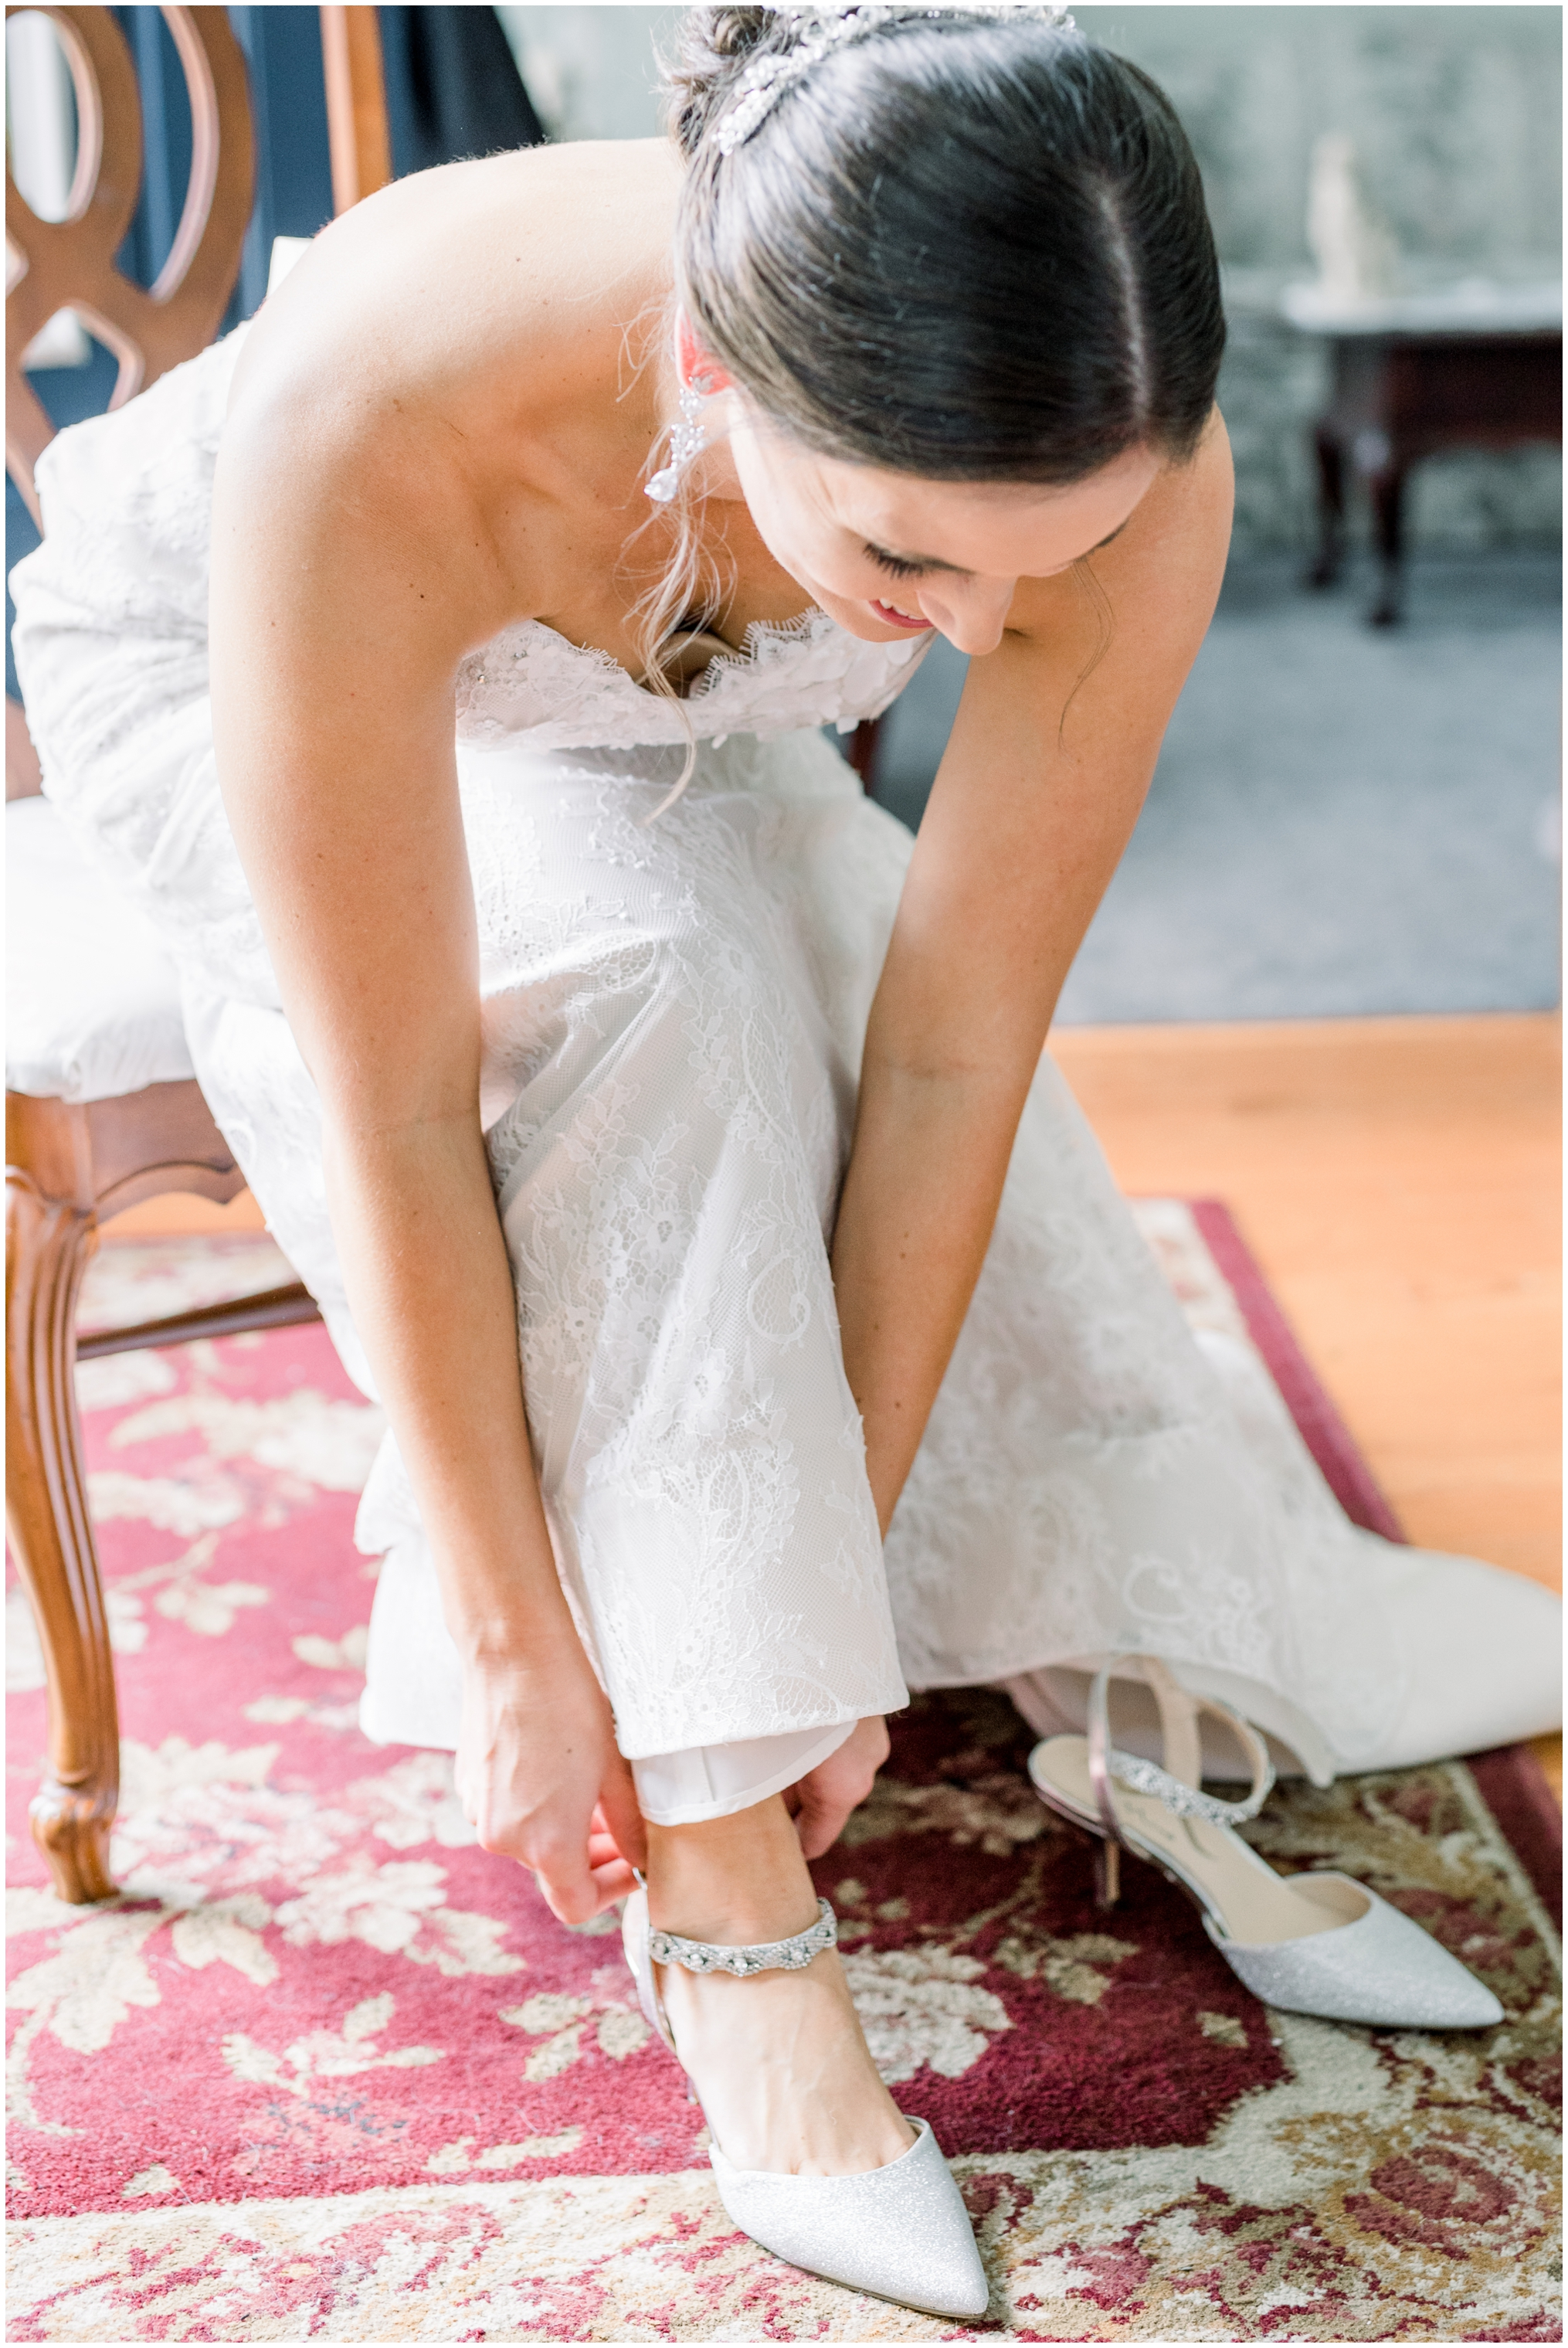 Krista Brackin Photography | April Wedding at The Carriage House at Rockwood Park_0017.jpg